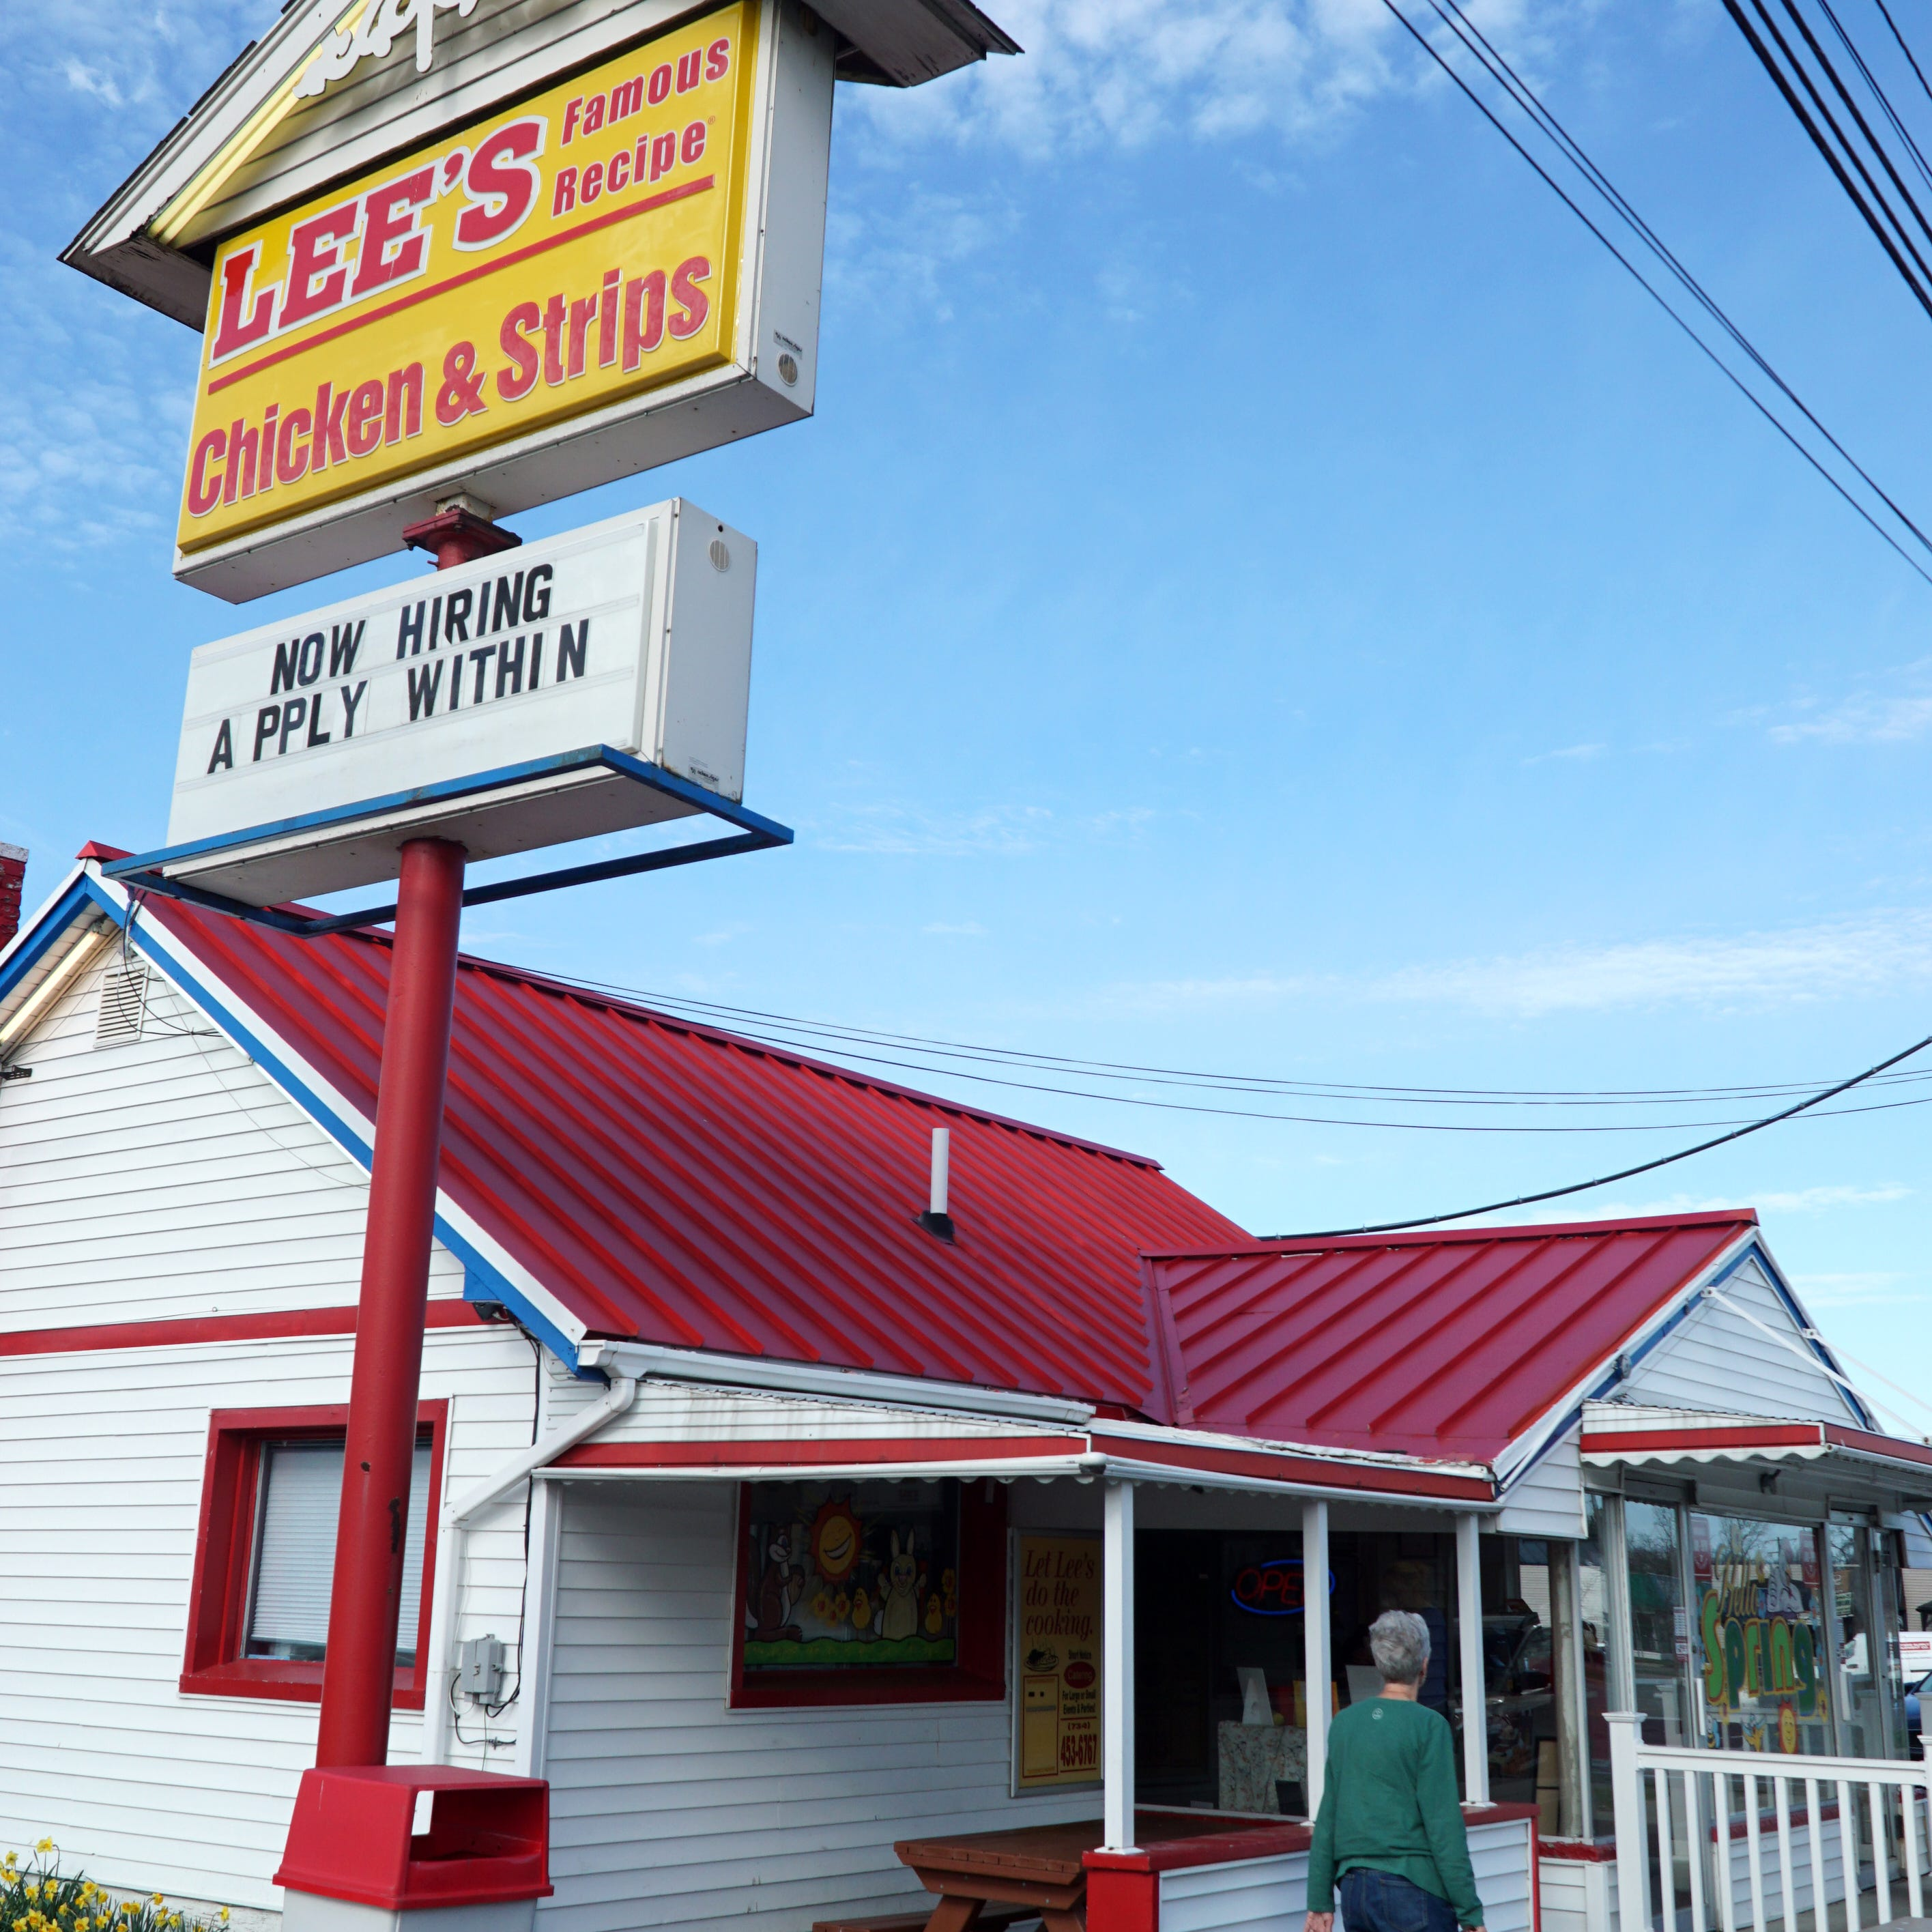 This chicken joint has been a Plymouth area mainstay for generations